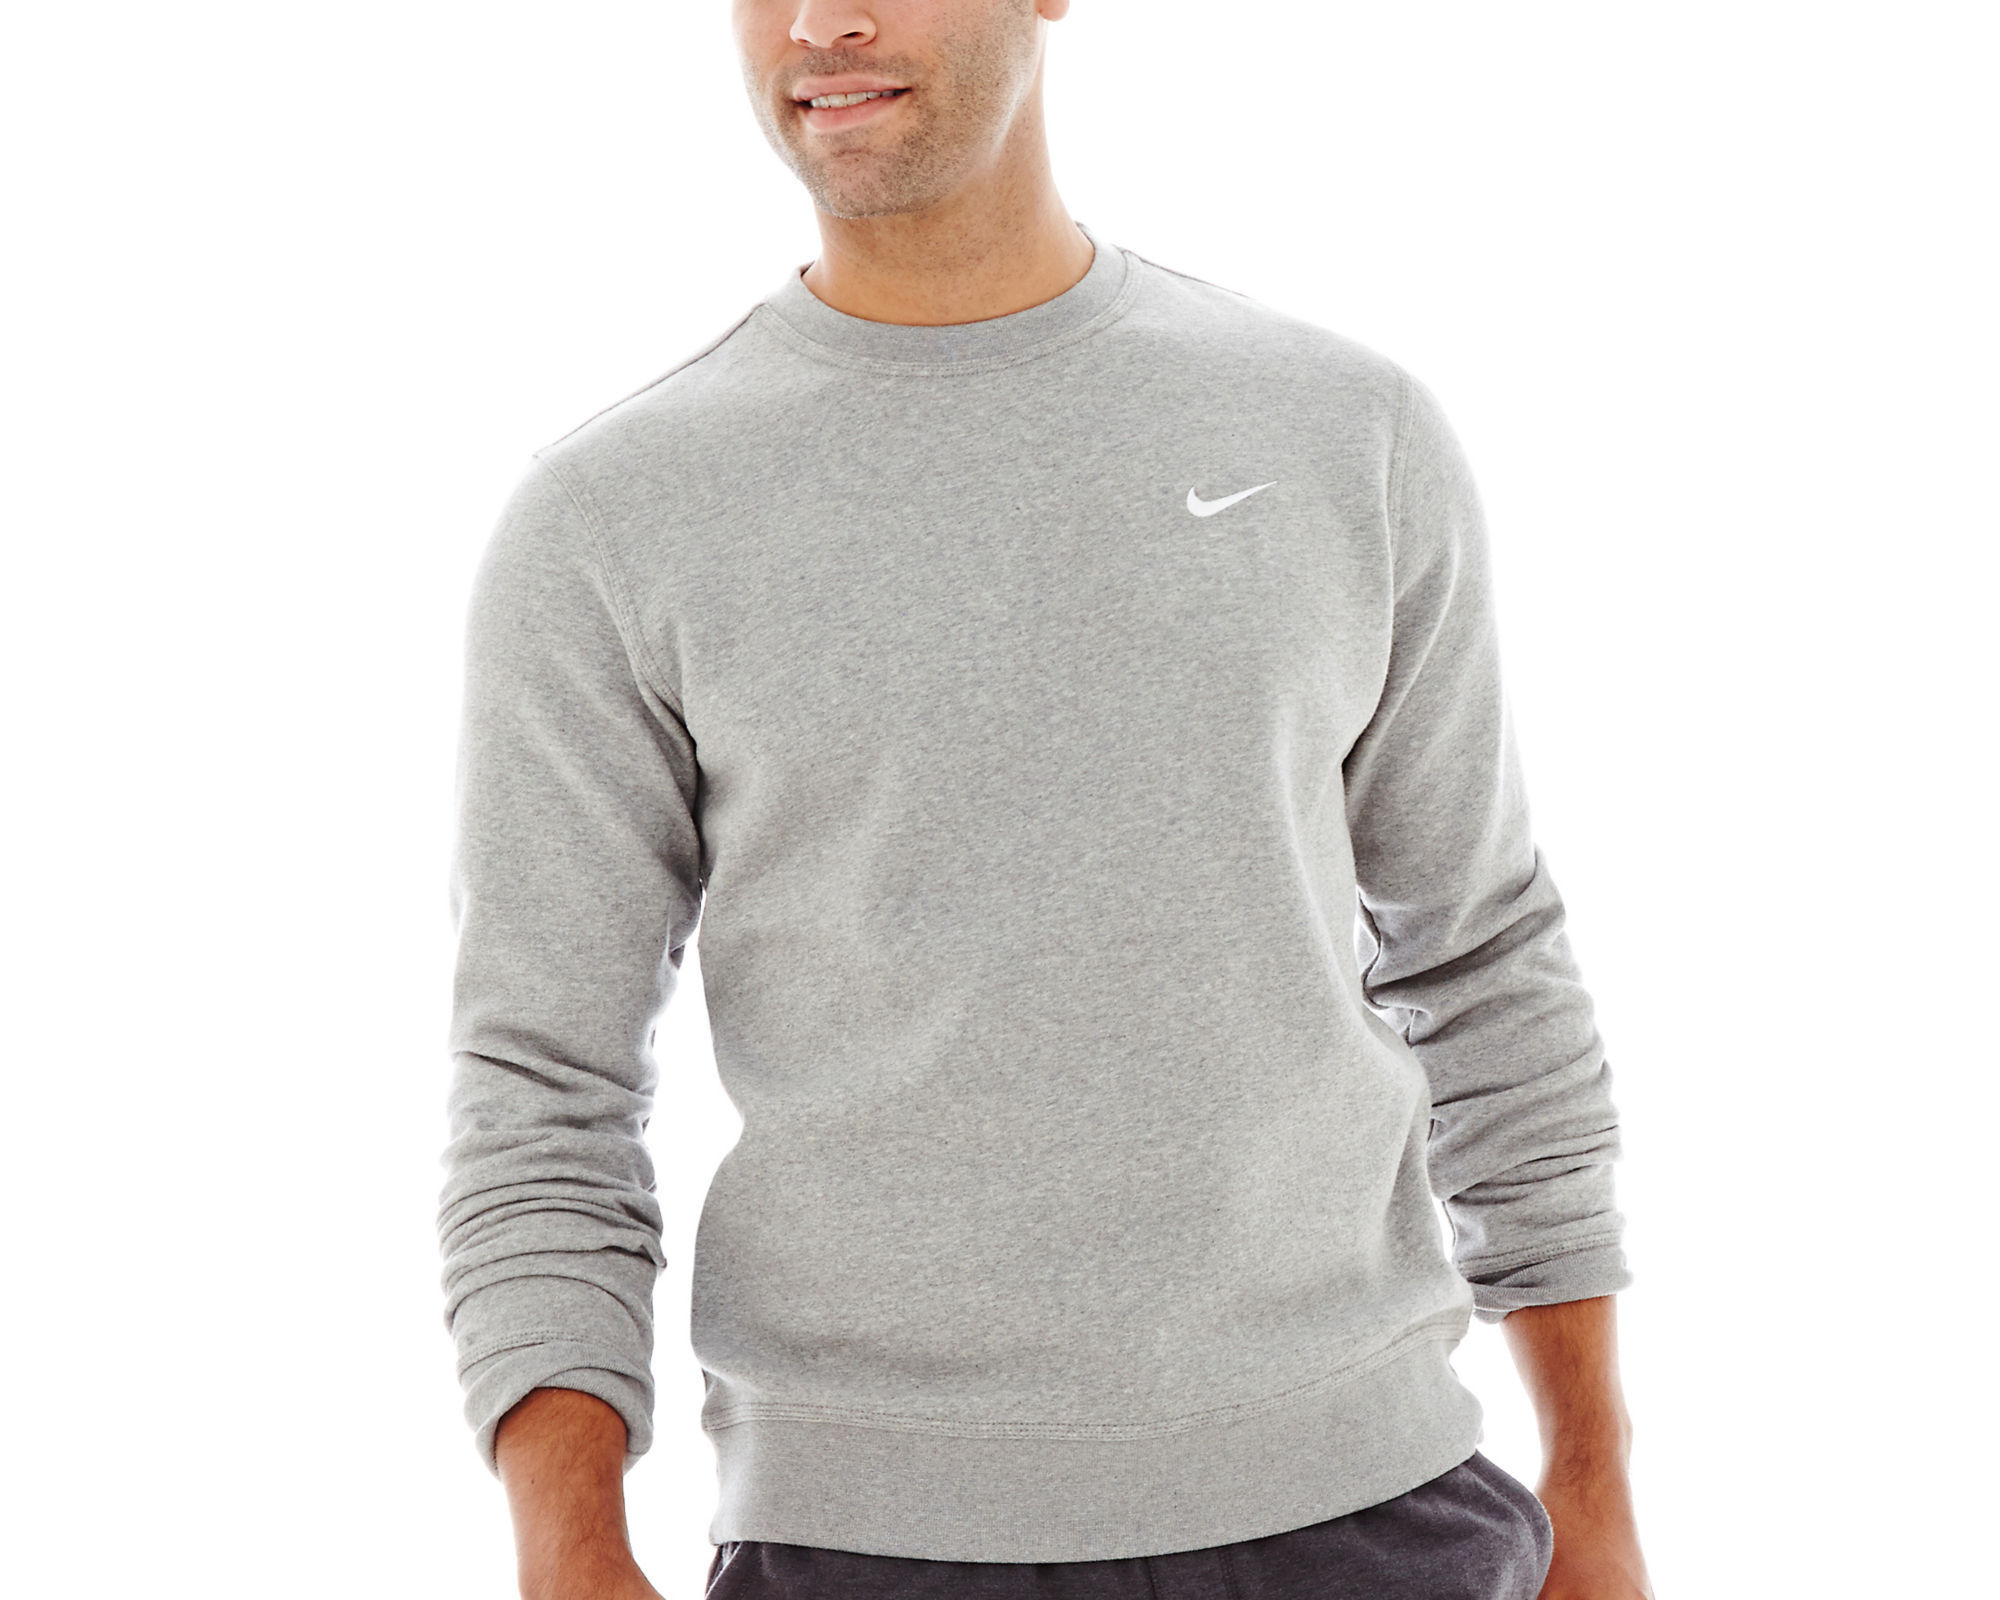 UPC 826218192111 - Nike Fleece Crewneck Sweatshirt | upcitemdb.com